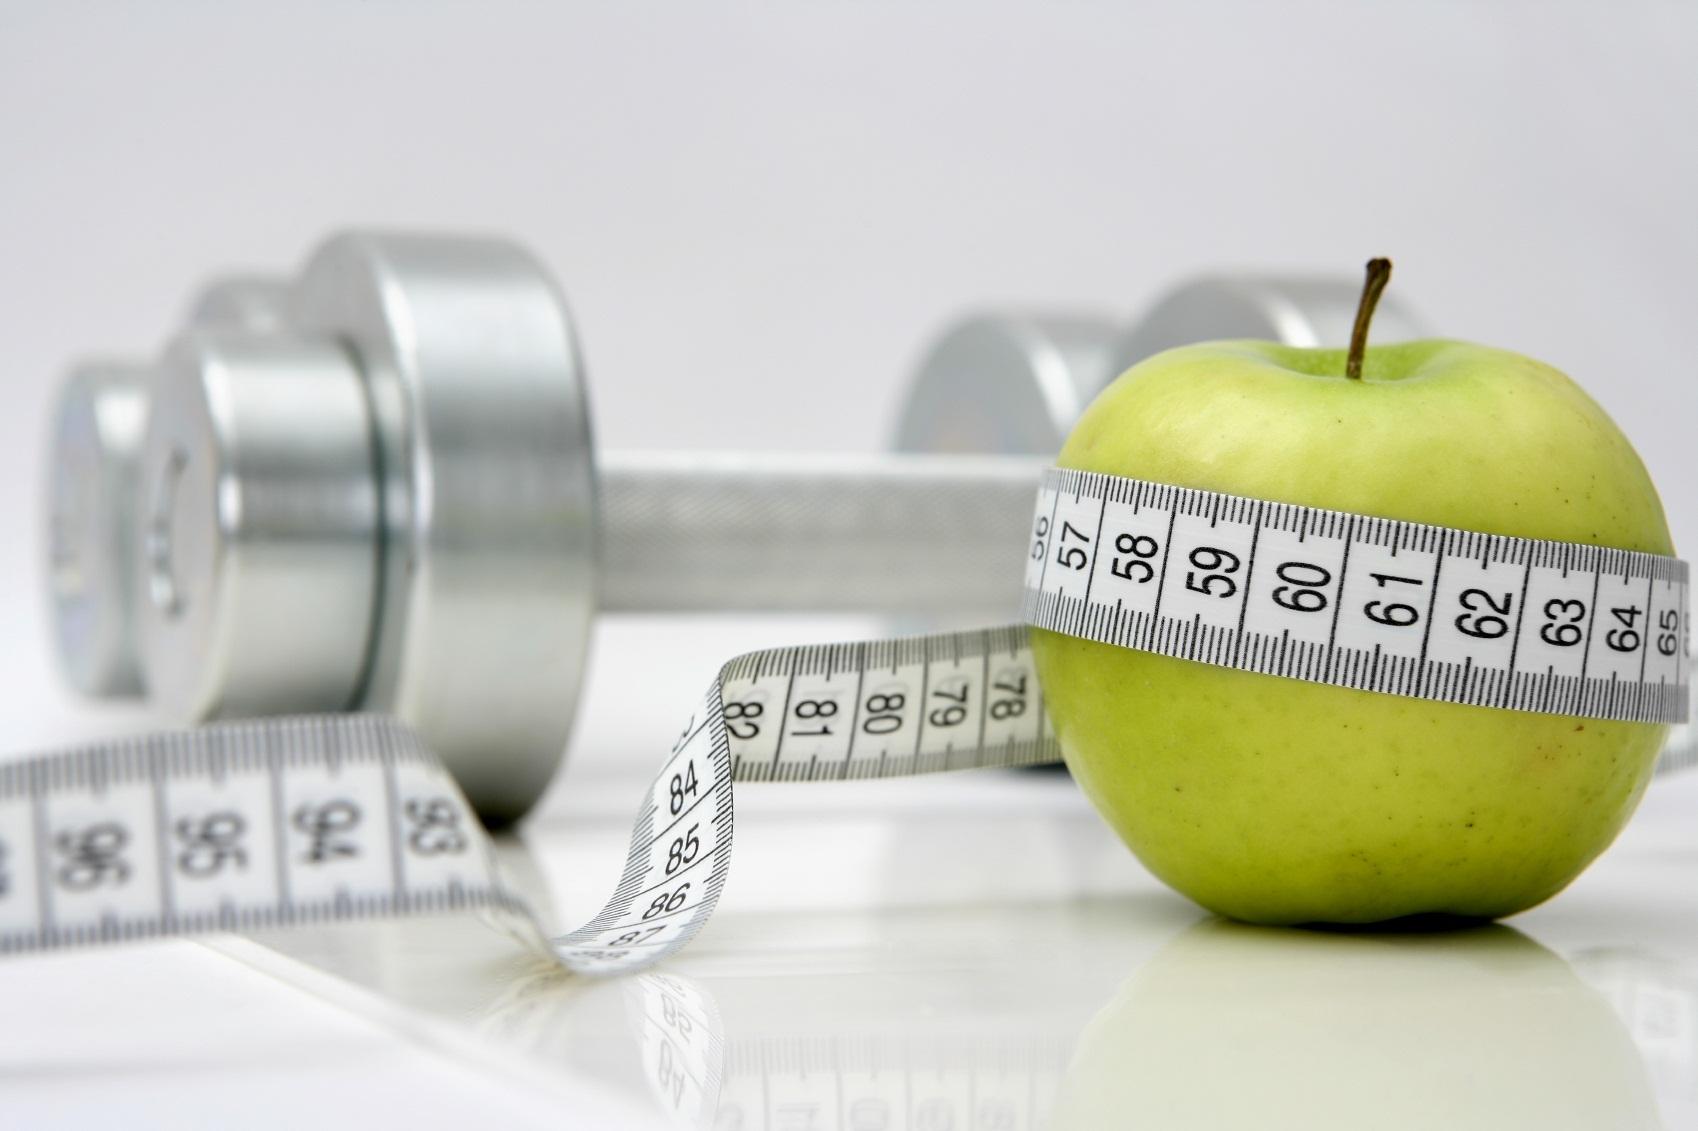 A picture of measuring tape, an apple, and a pair of dumbbells